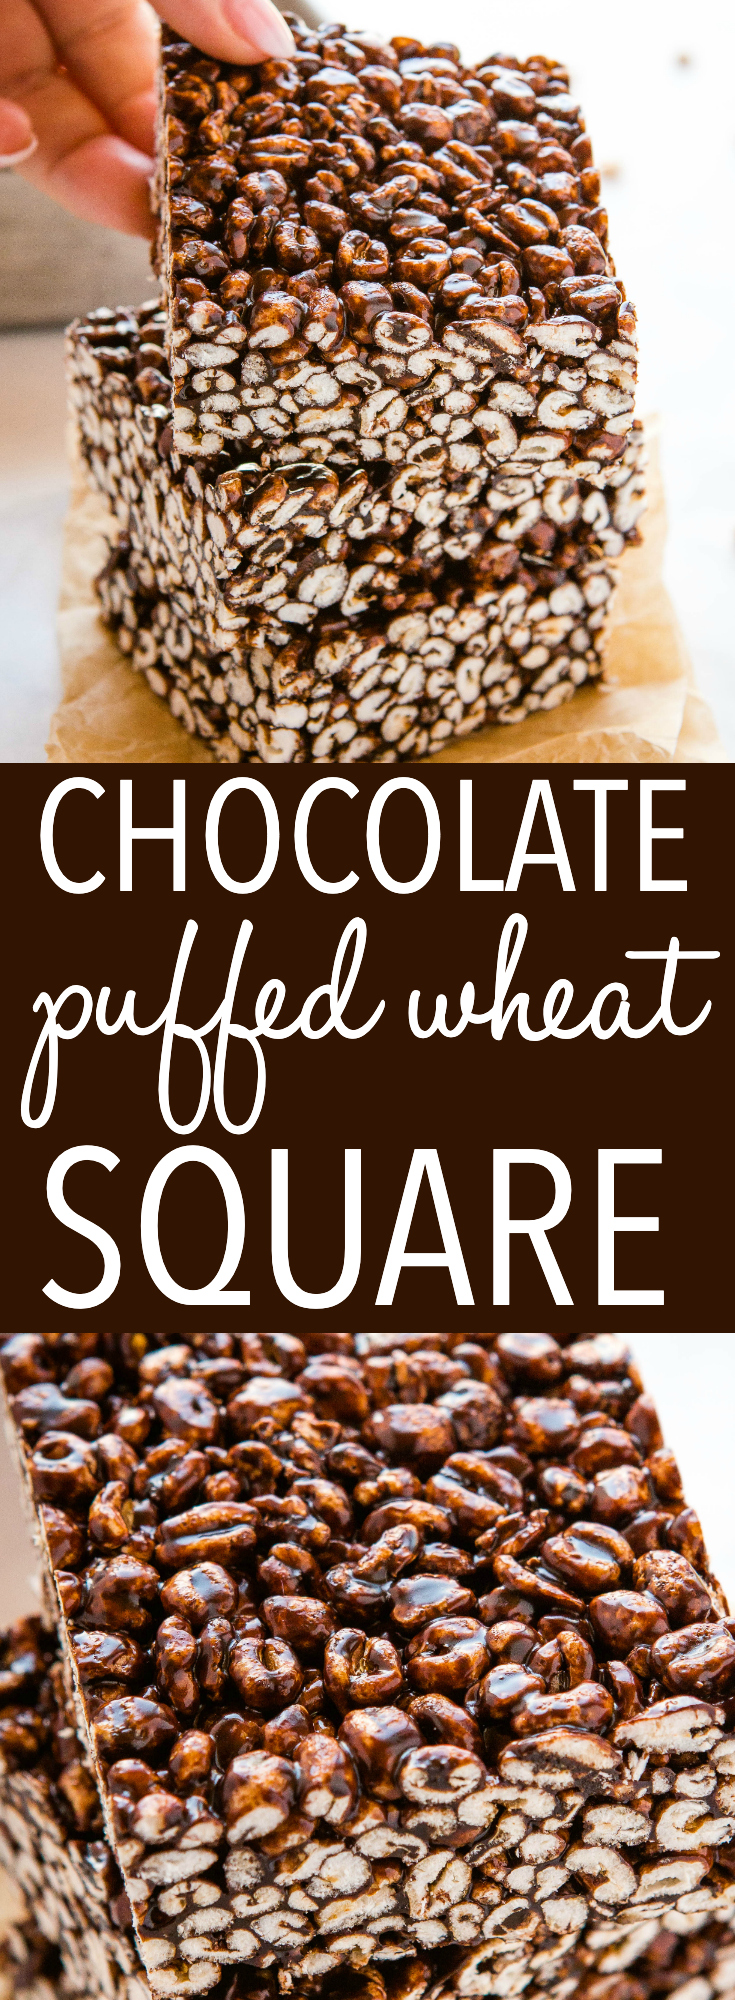 This Chocolate Puffed Wheat Square is a classic dessert recipe made with whole grain puffed wheat and a sticky chocolate sauce. Perfect for dessert or a treat, and made with only 6 ingredients! Recipe from thebusybaker.ca! #puffedwheatsquare #cake #chocolate #caramel #nobake #dessert via @busybakerblog